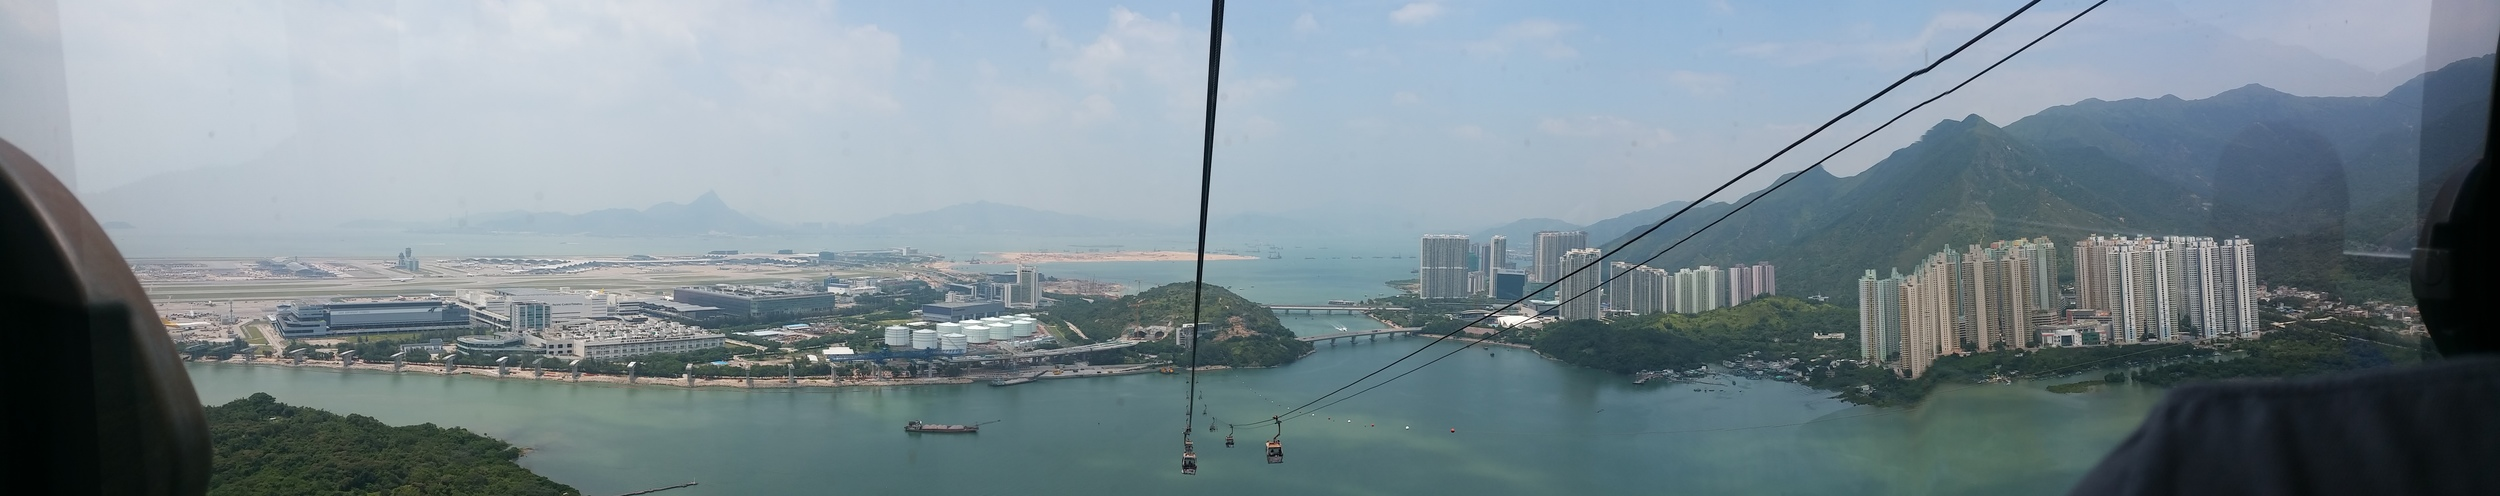 Panoramic view from the cable car.